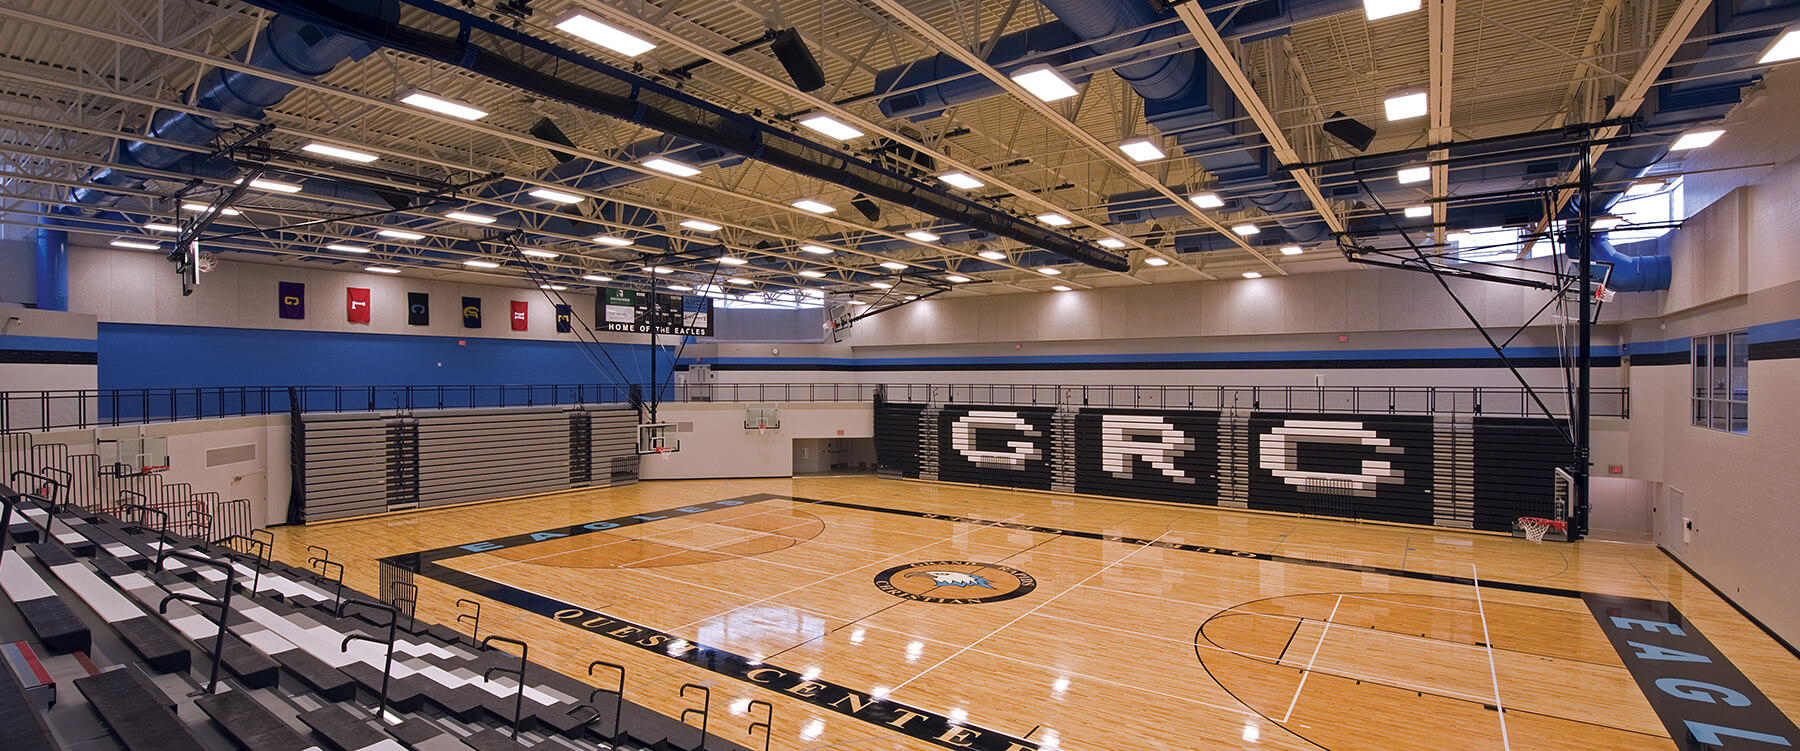 GRCHS Quest Center interior gym